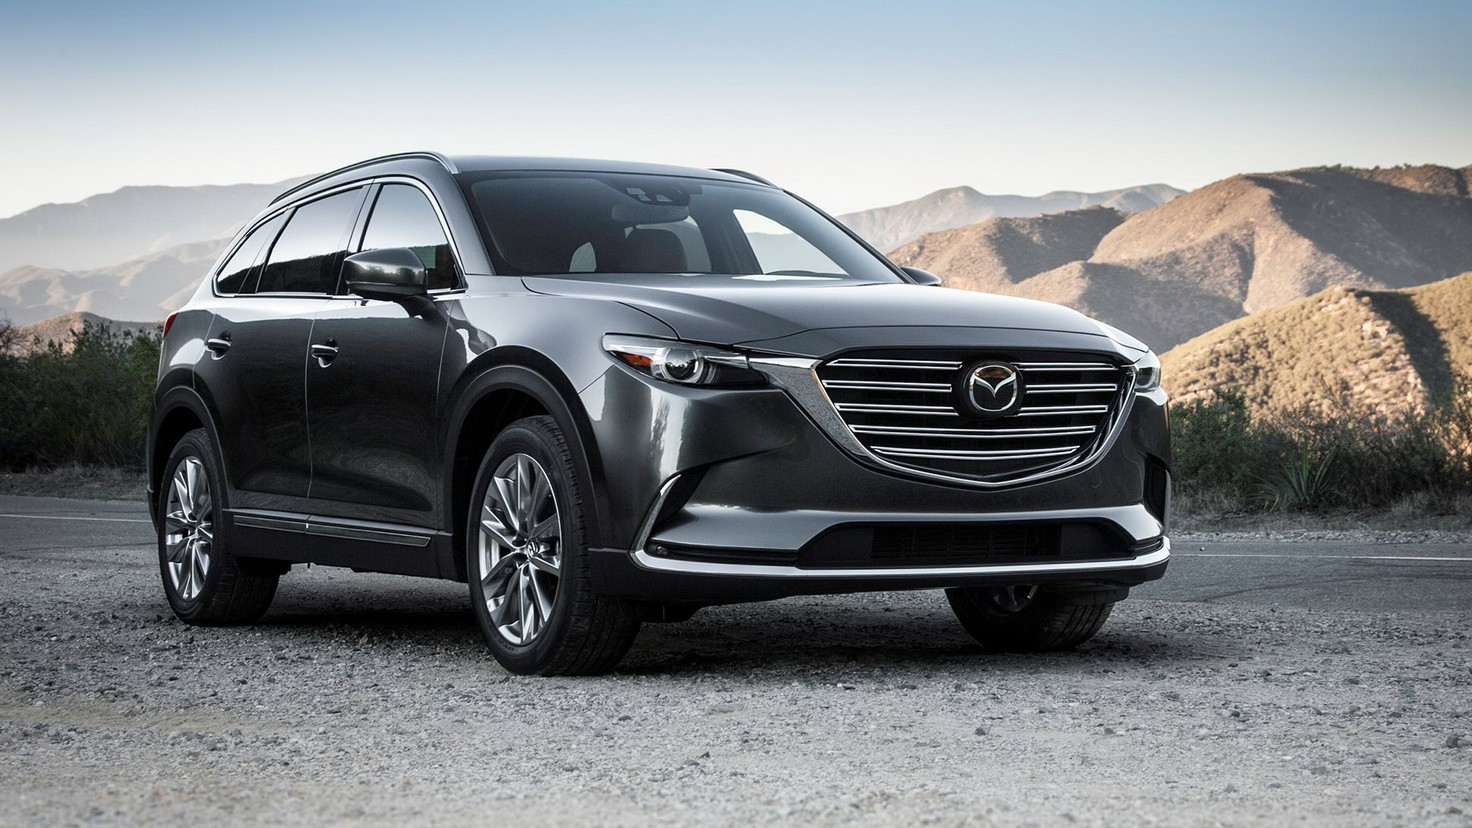 2016 mazda cx 9 australian price revealed chasing cars. Black Bedroom Furniture Sets. Home Design Ideas